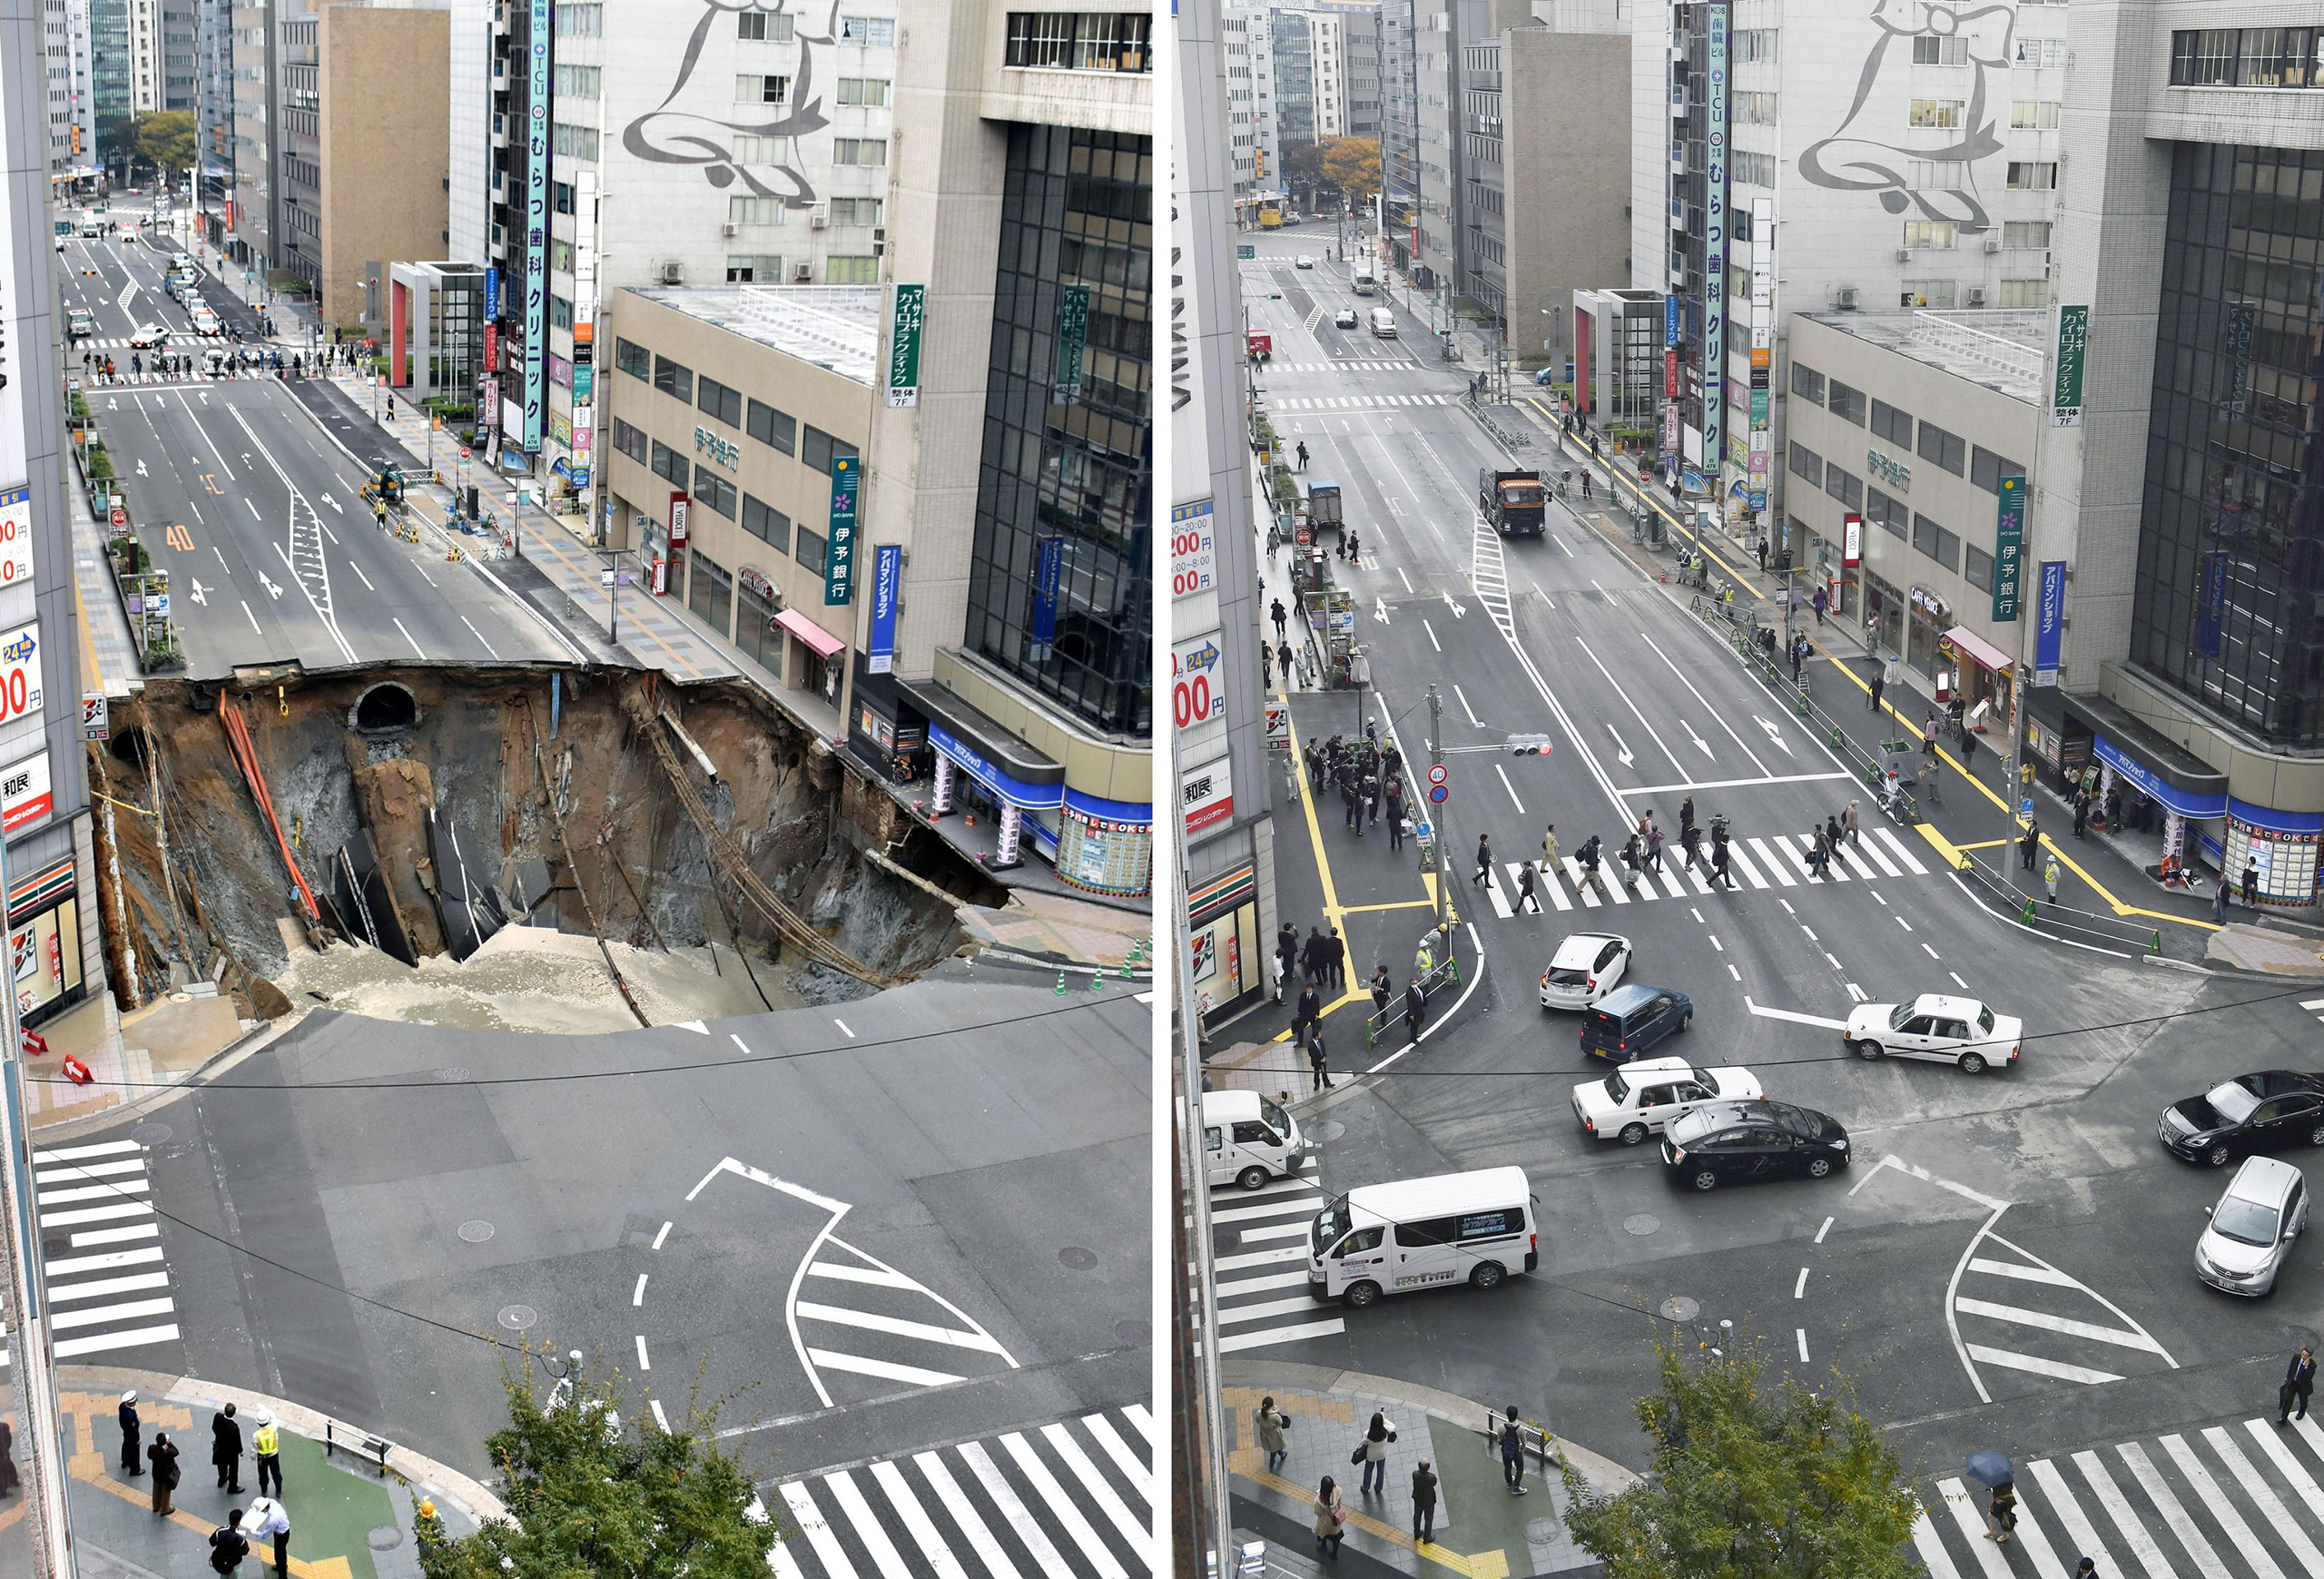 A combination photo shows a sinkhole in Fukuoka, Japan, on Nov. 8, 2016, left, and fixed a week later on Nov. 15, 2016.